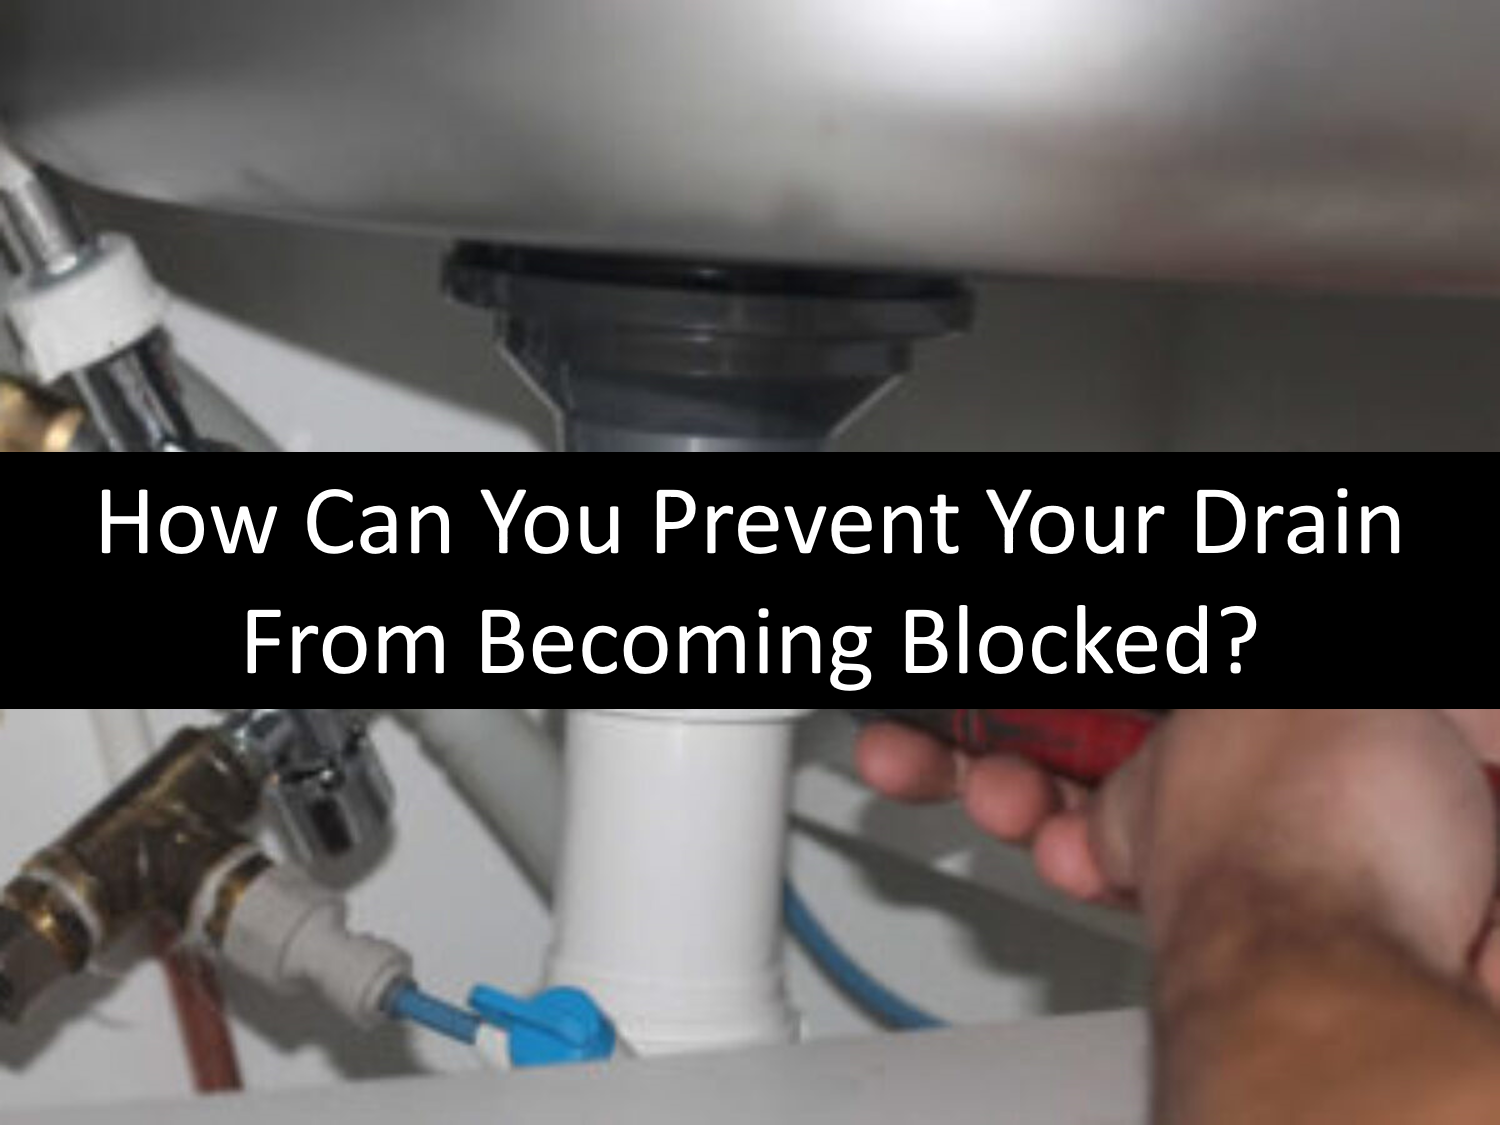 Blocked drains are a common occurrence, but there are solutions and preventative measures you can take so that slow and blocked drains don't interrupt your lifestyle.